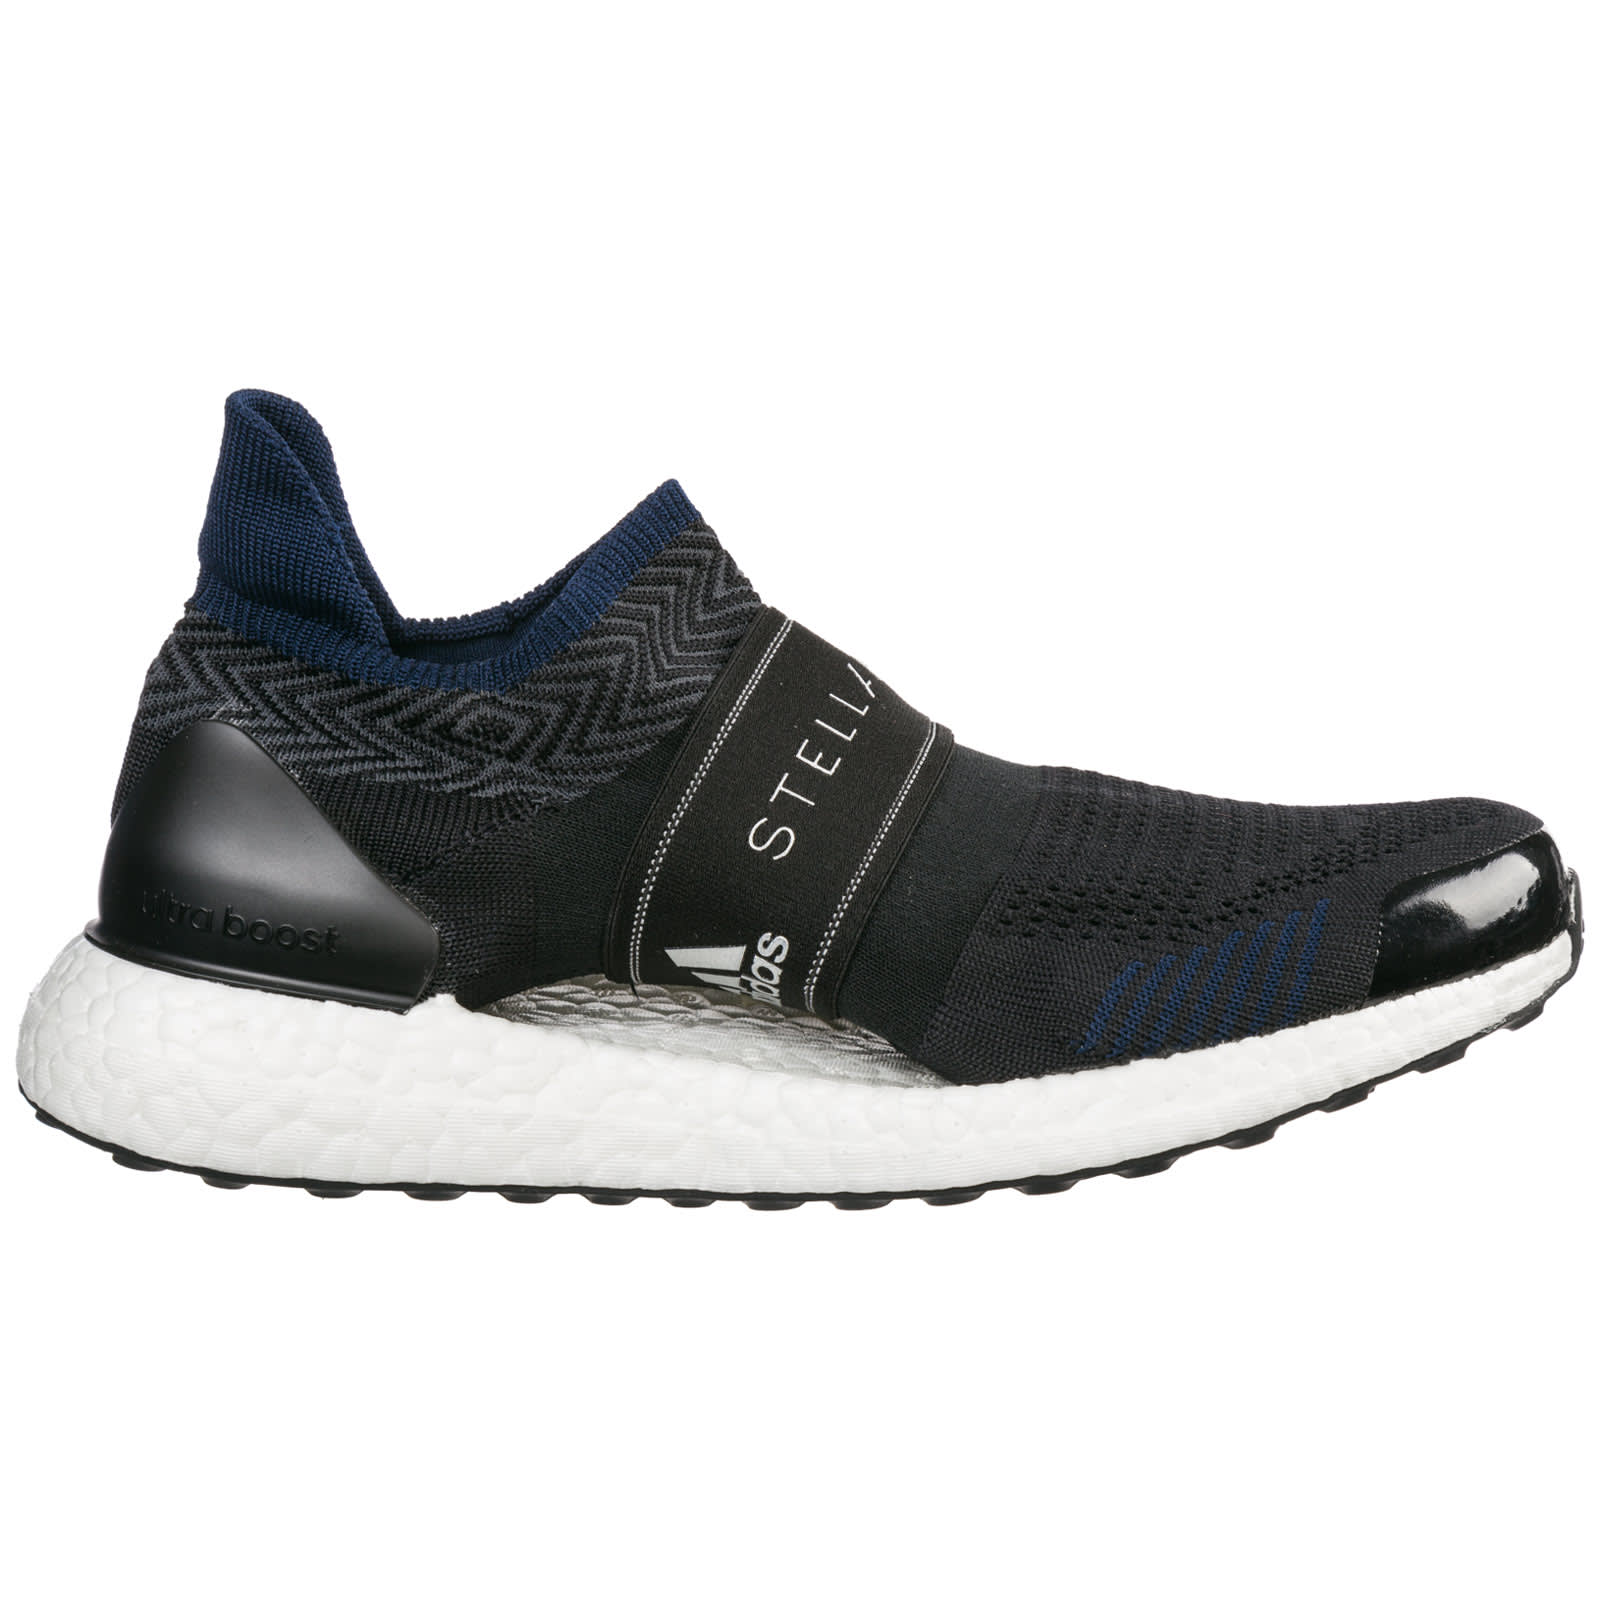 Adidas by Stella McCartney Shoes Trainers Sneakers Running Ultraboost X 3d